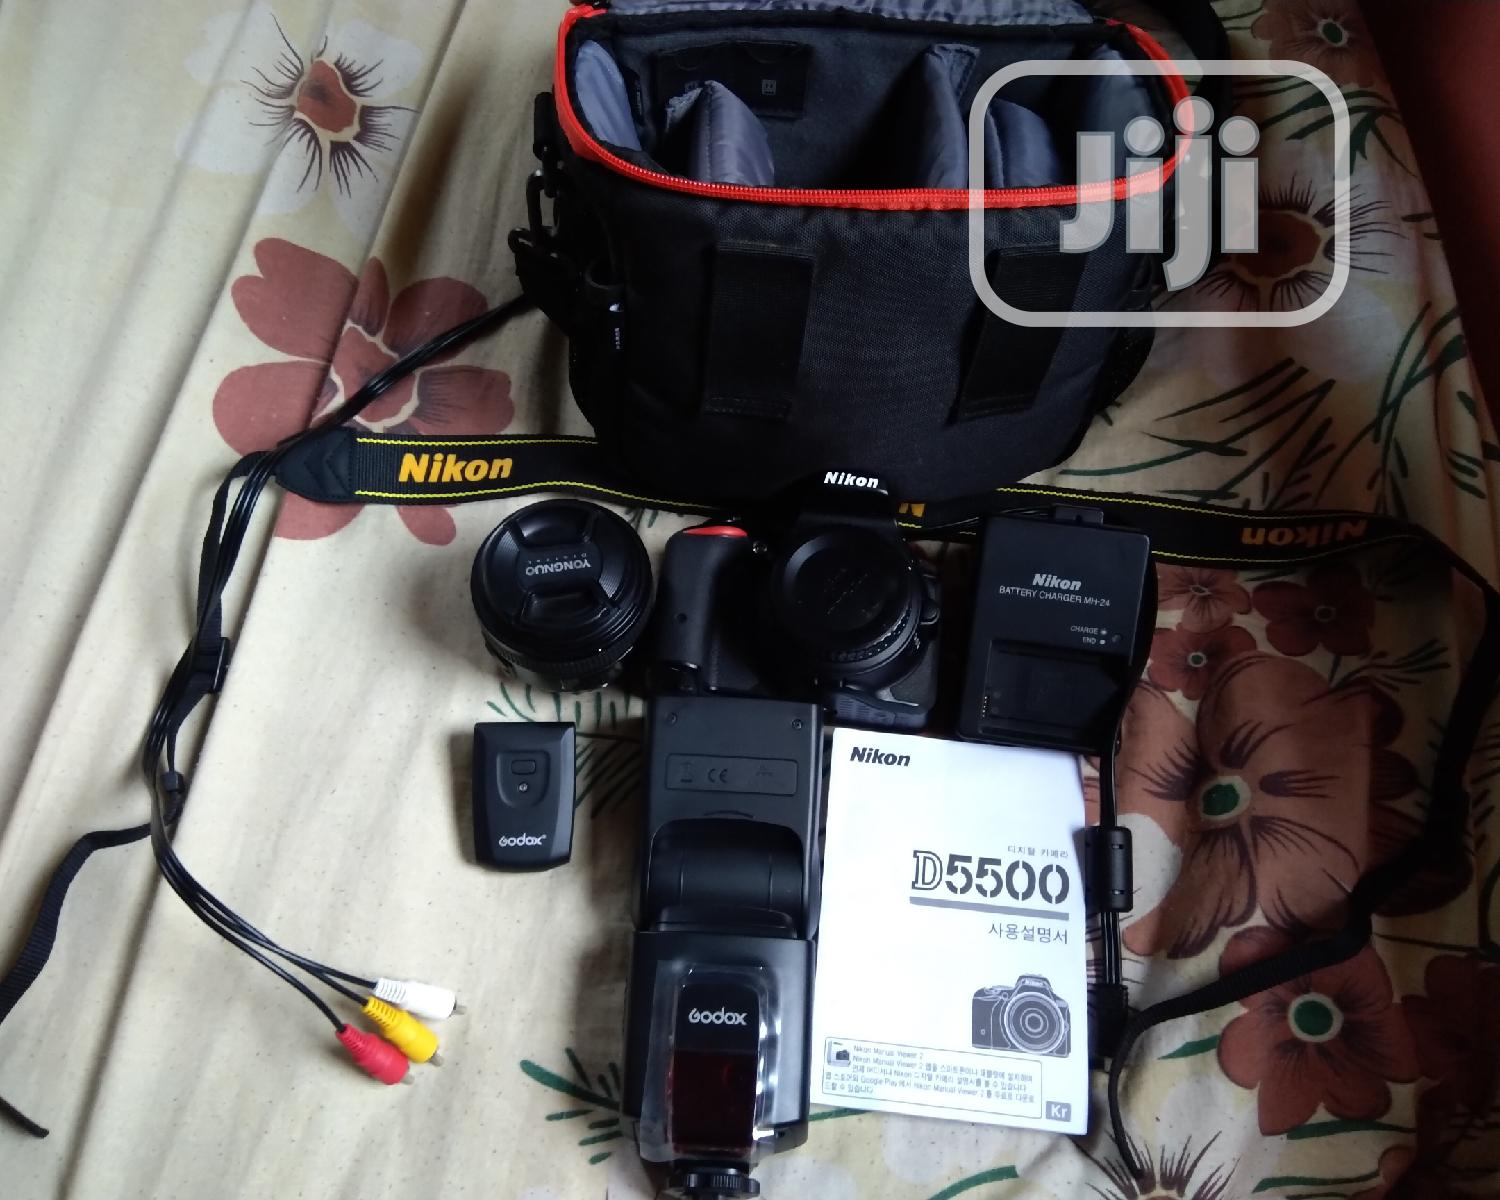 Archive: Nikon D5500 With 50mm Lens and Speed Light